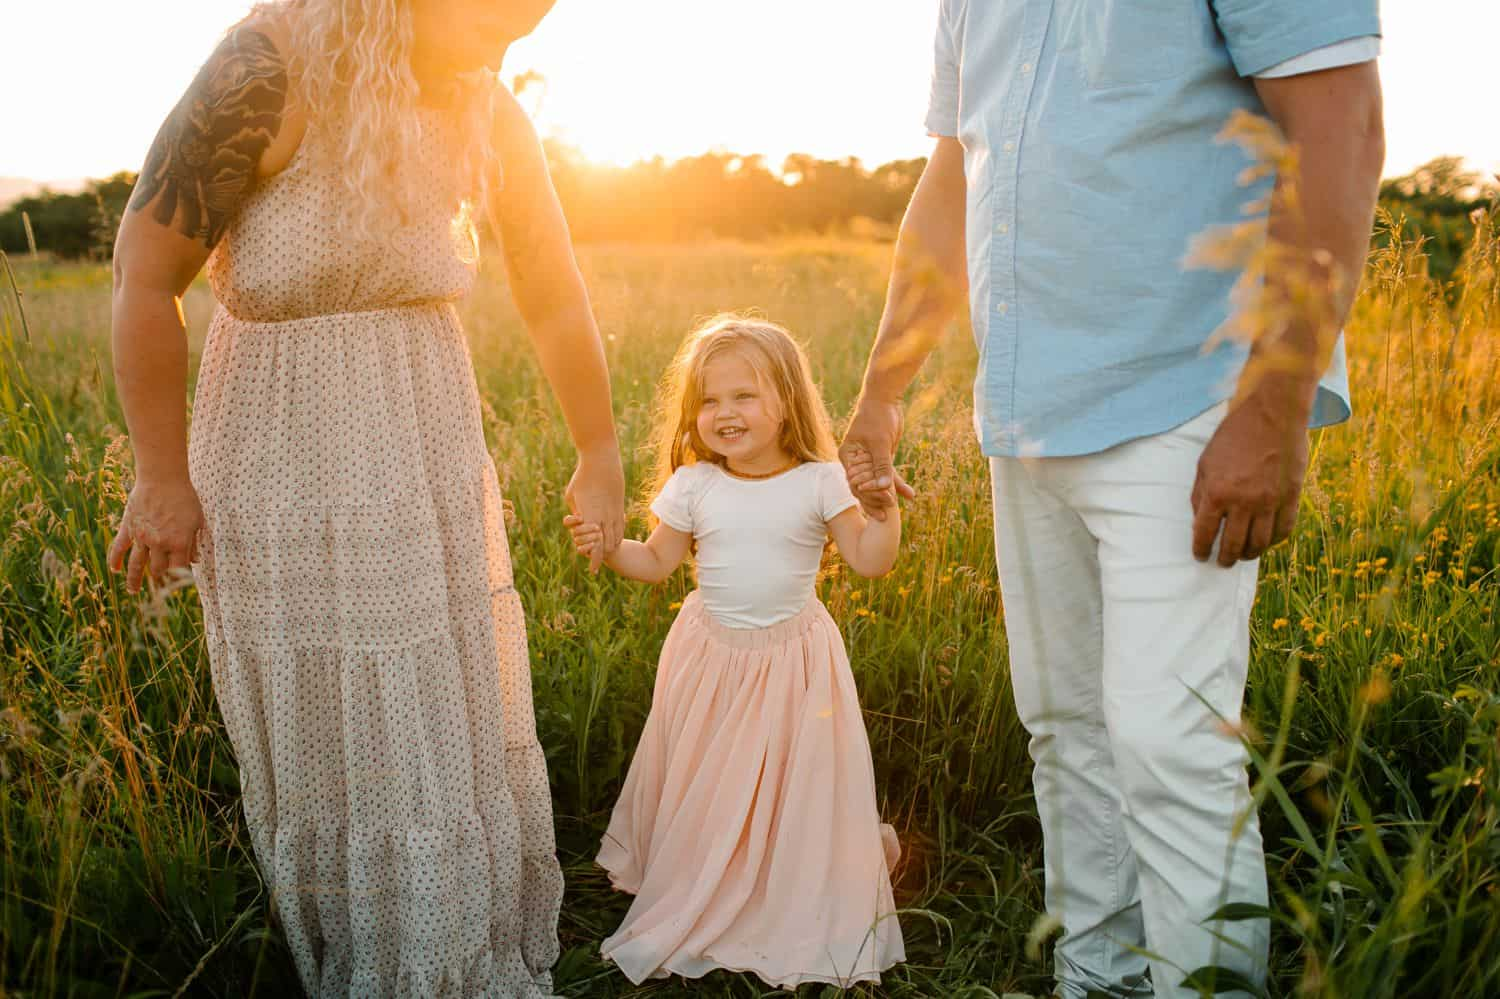 A little girl in a pink skirt holds her parents hands in a field at sunset.